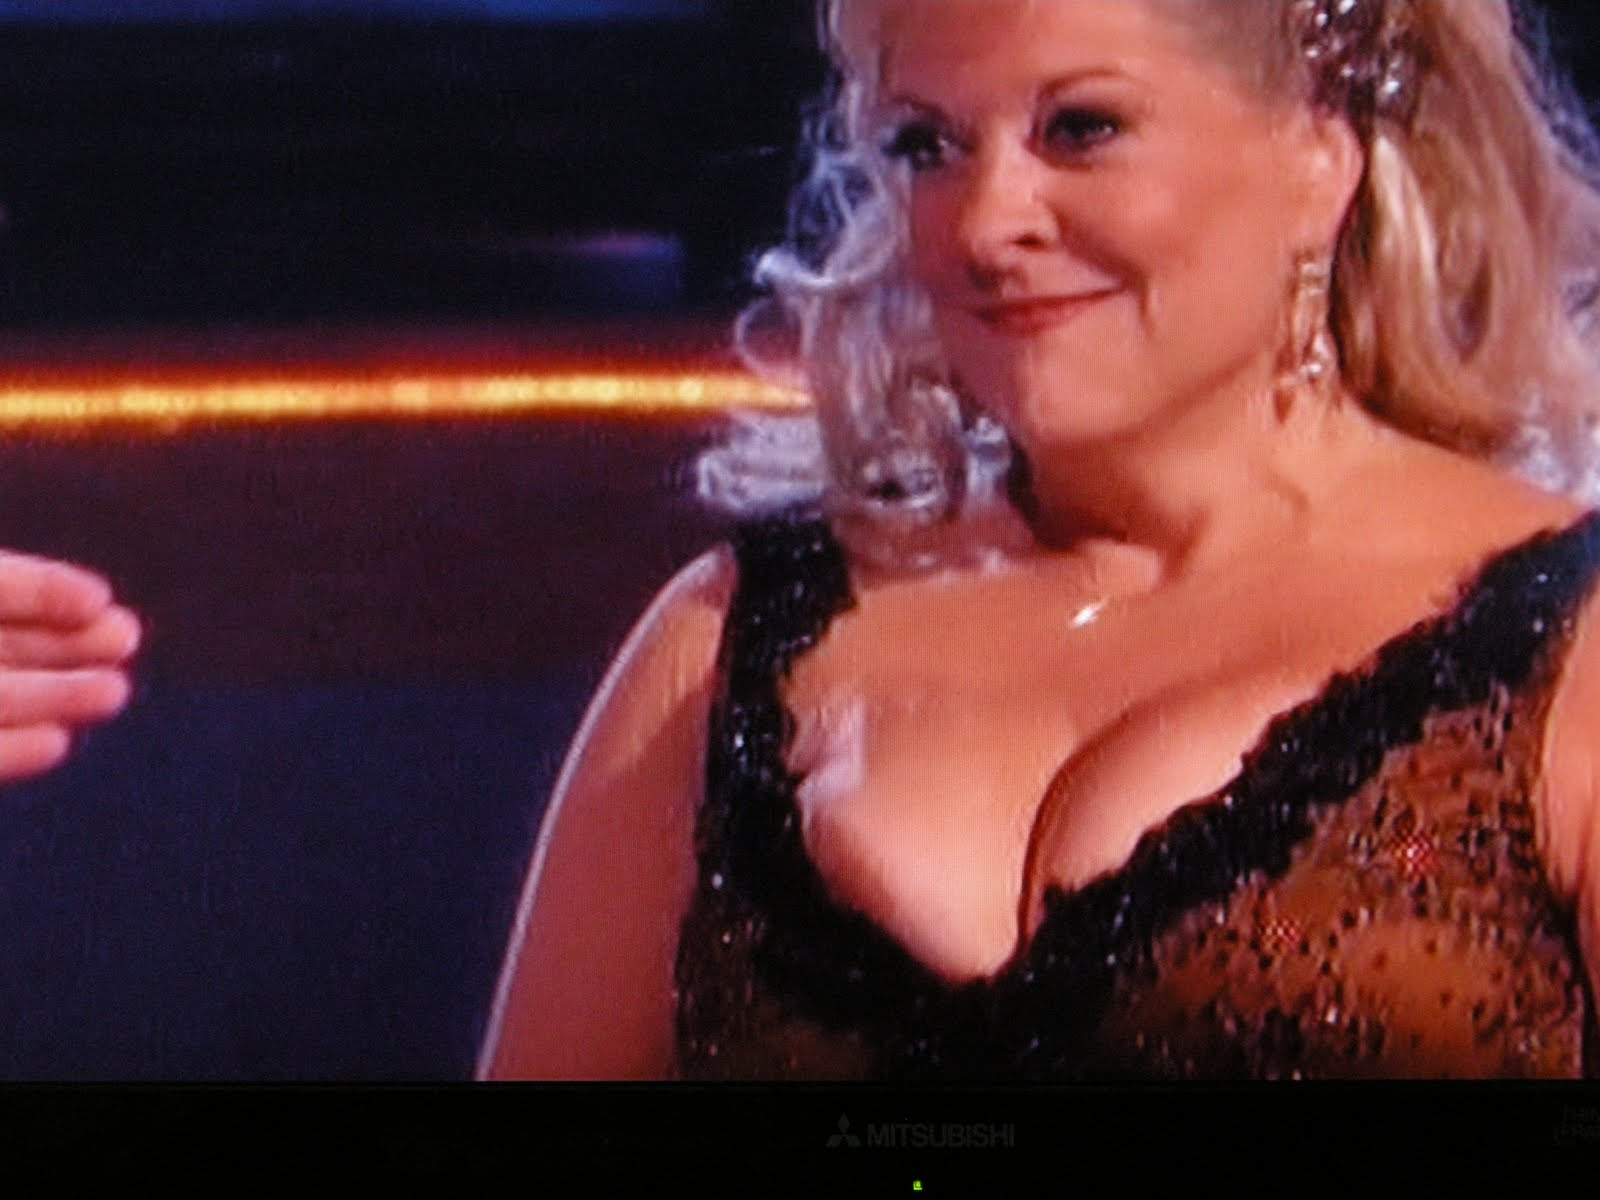 really Dancing with stars boob slip Yeahhhhhhhhhhhh bel